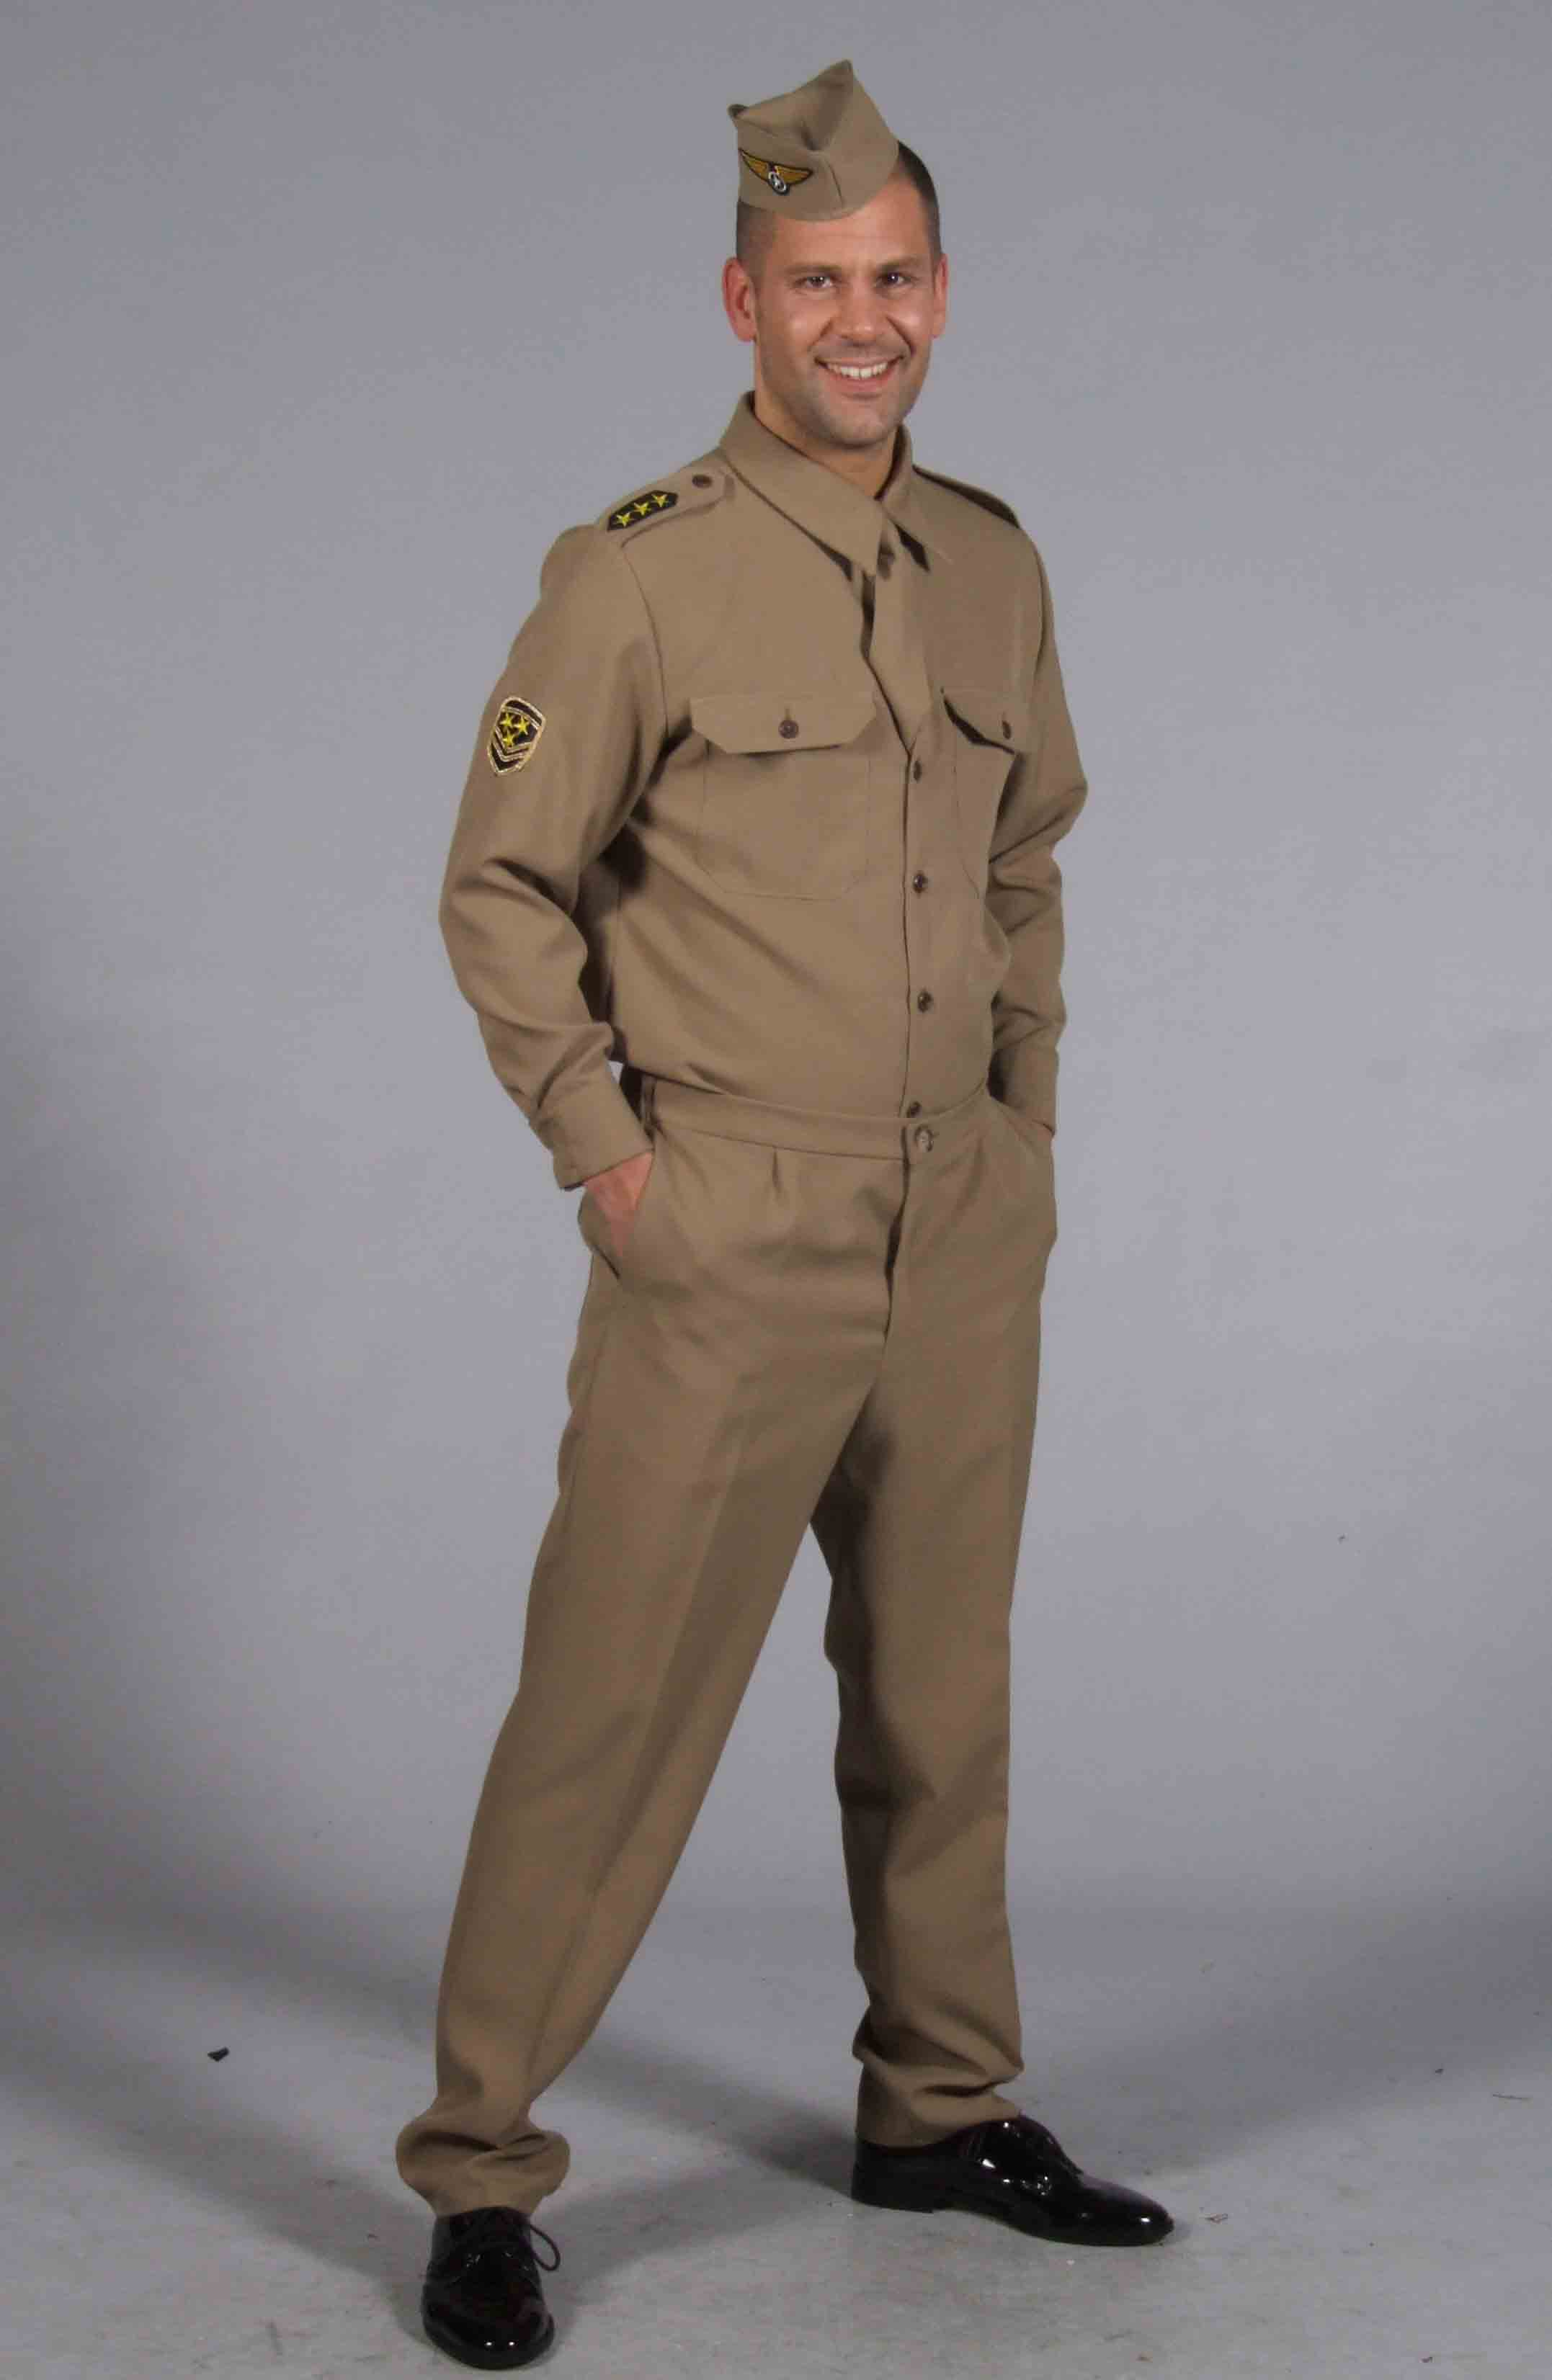 Men's American GI fancy dress costume